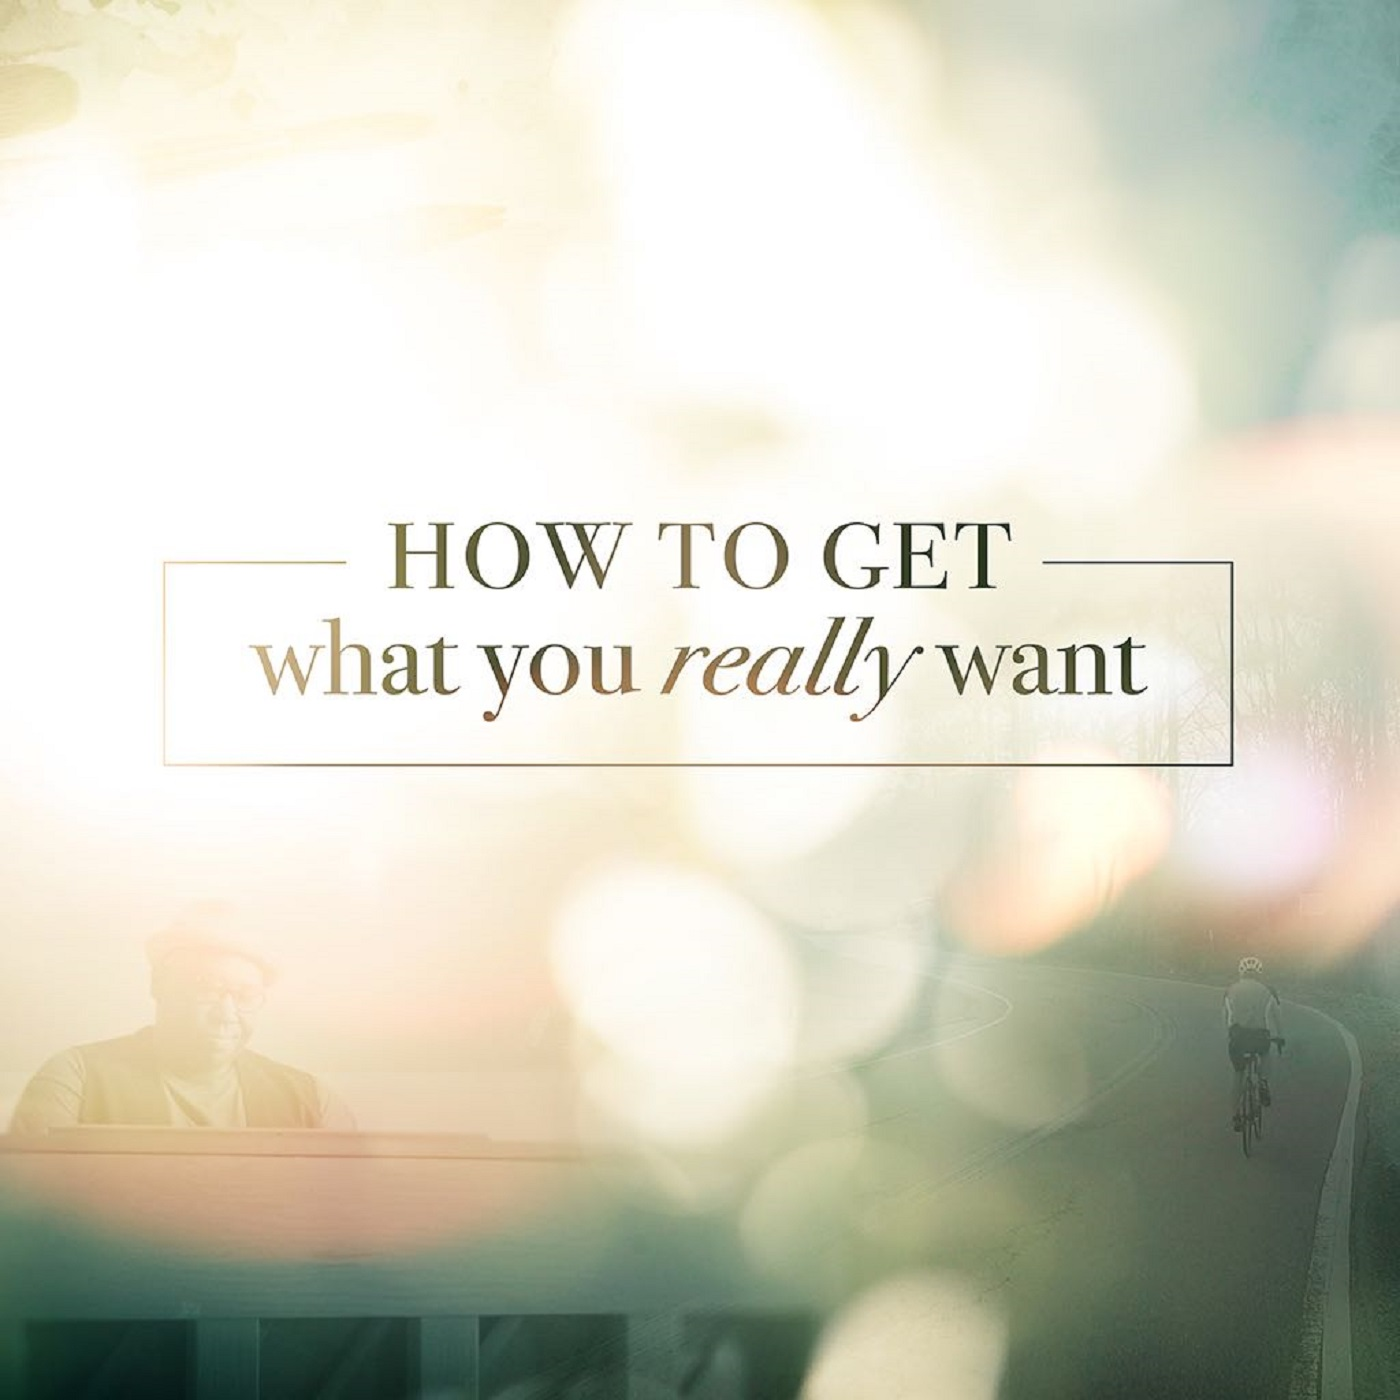 How To Get What You Really Want: Thinkin' It Through